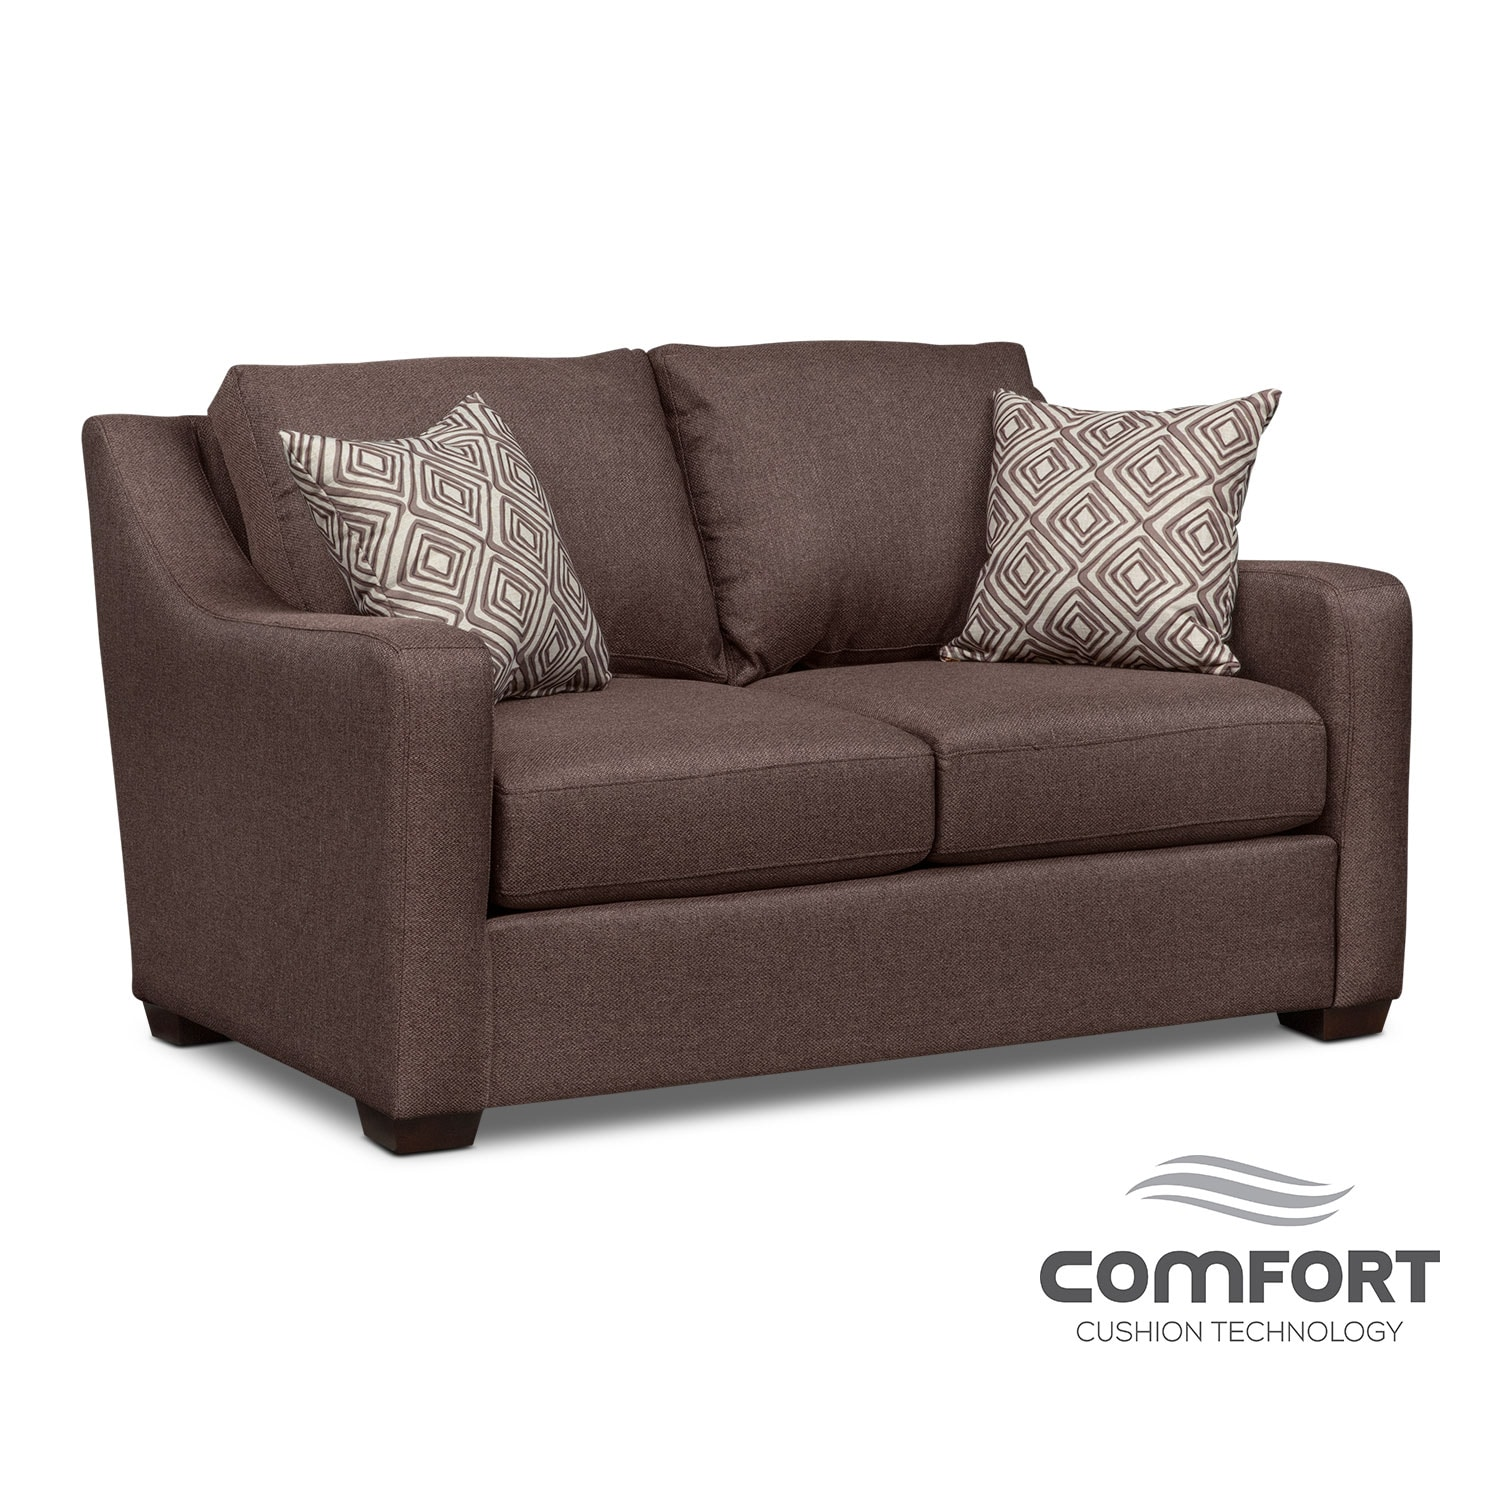 Living Room Furniture - Jules Comfort Loveseat - Brown